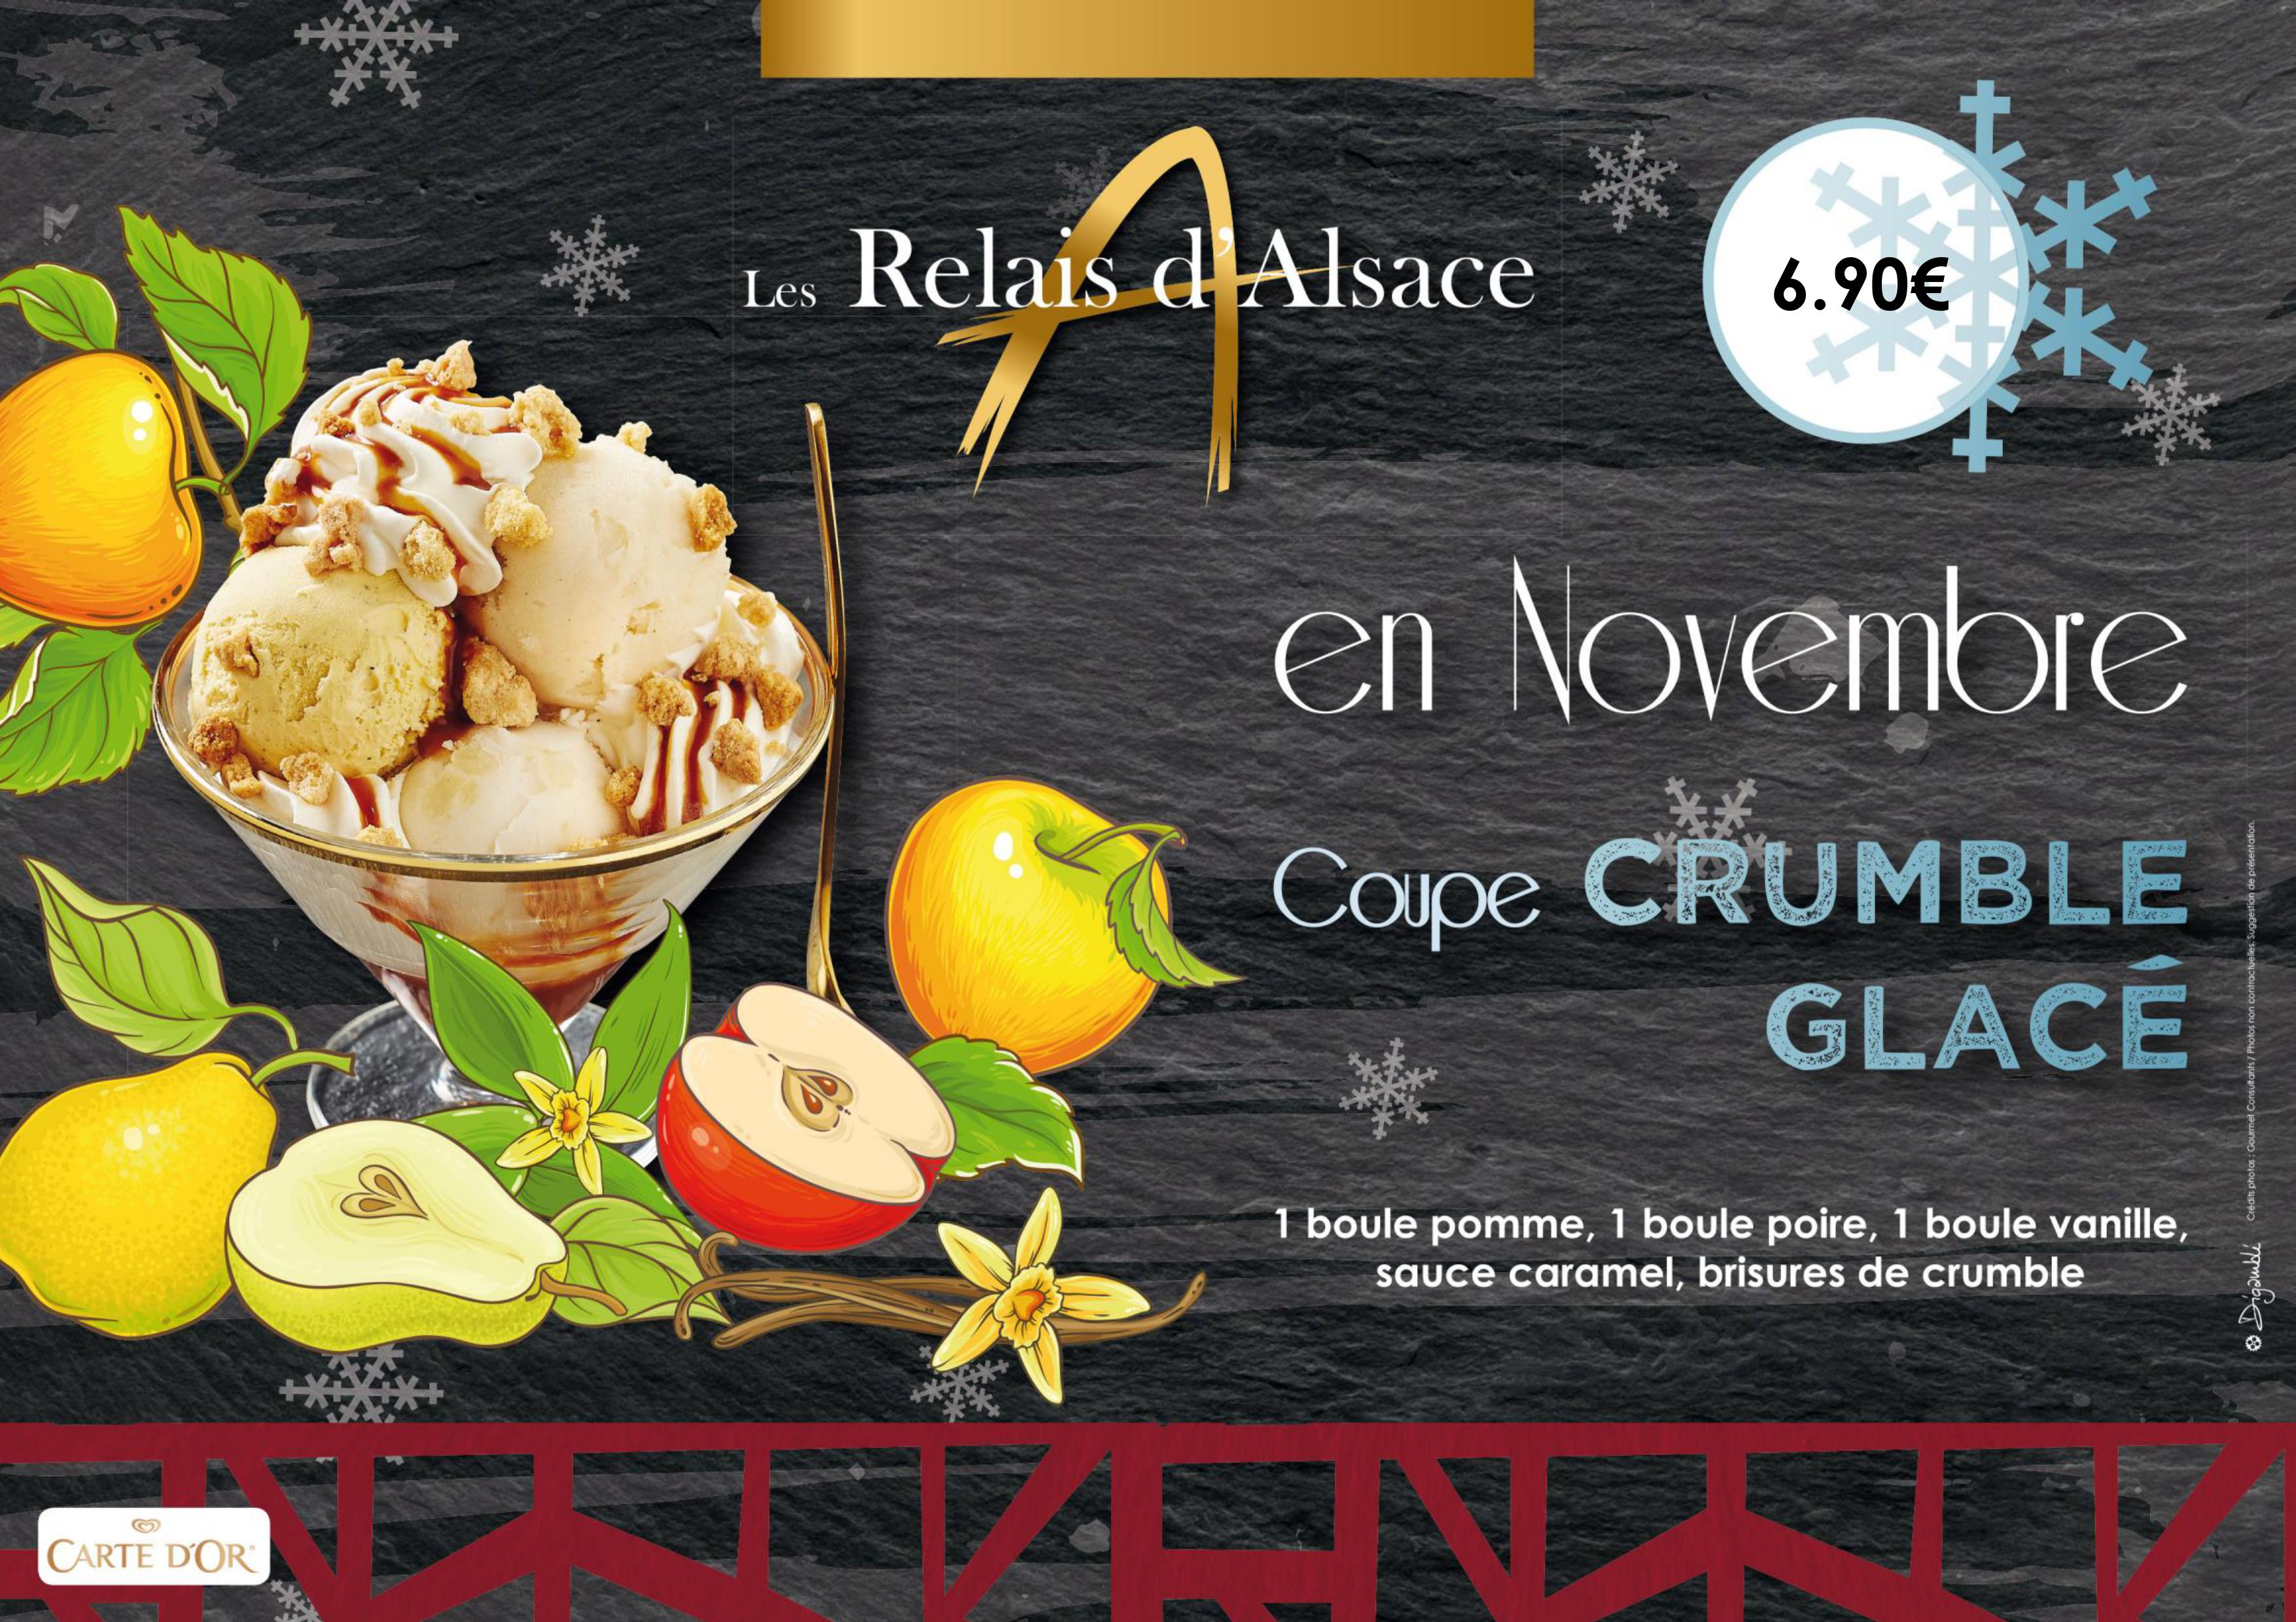 COUPE CRUMBLE GLACE